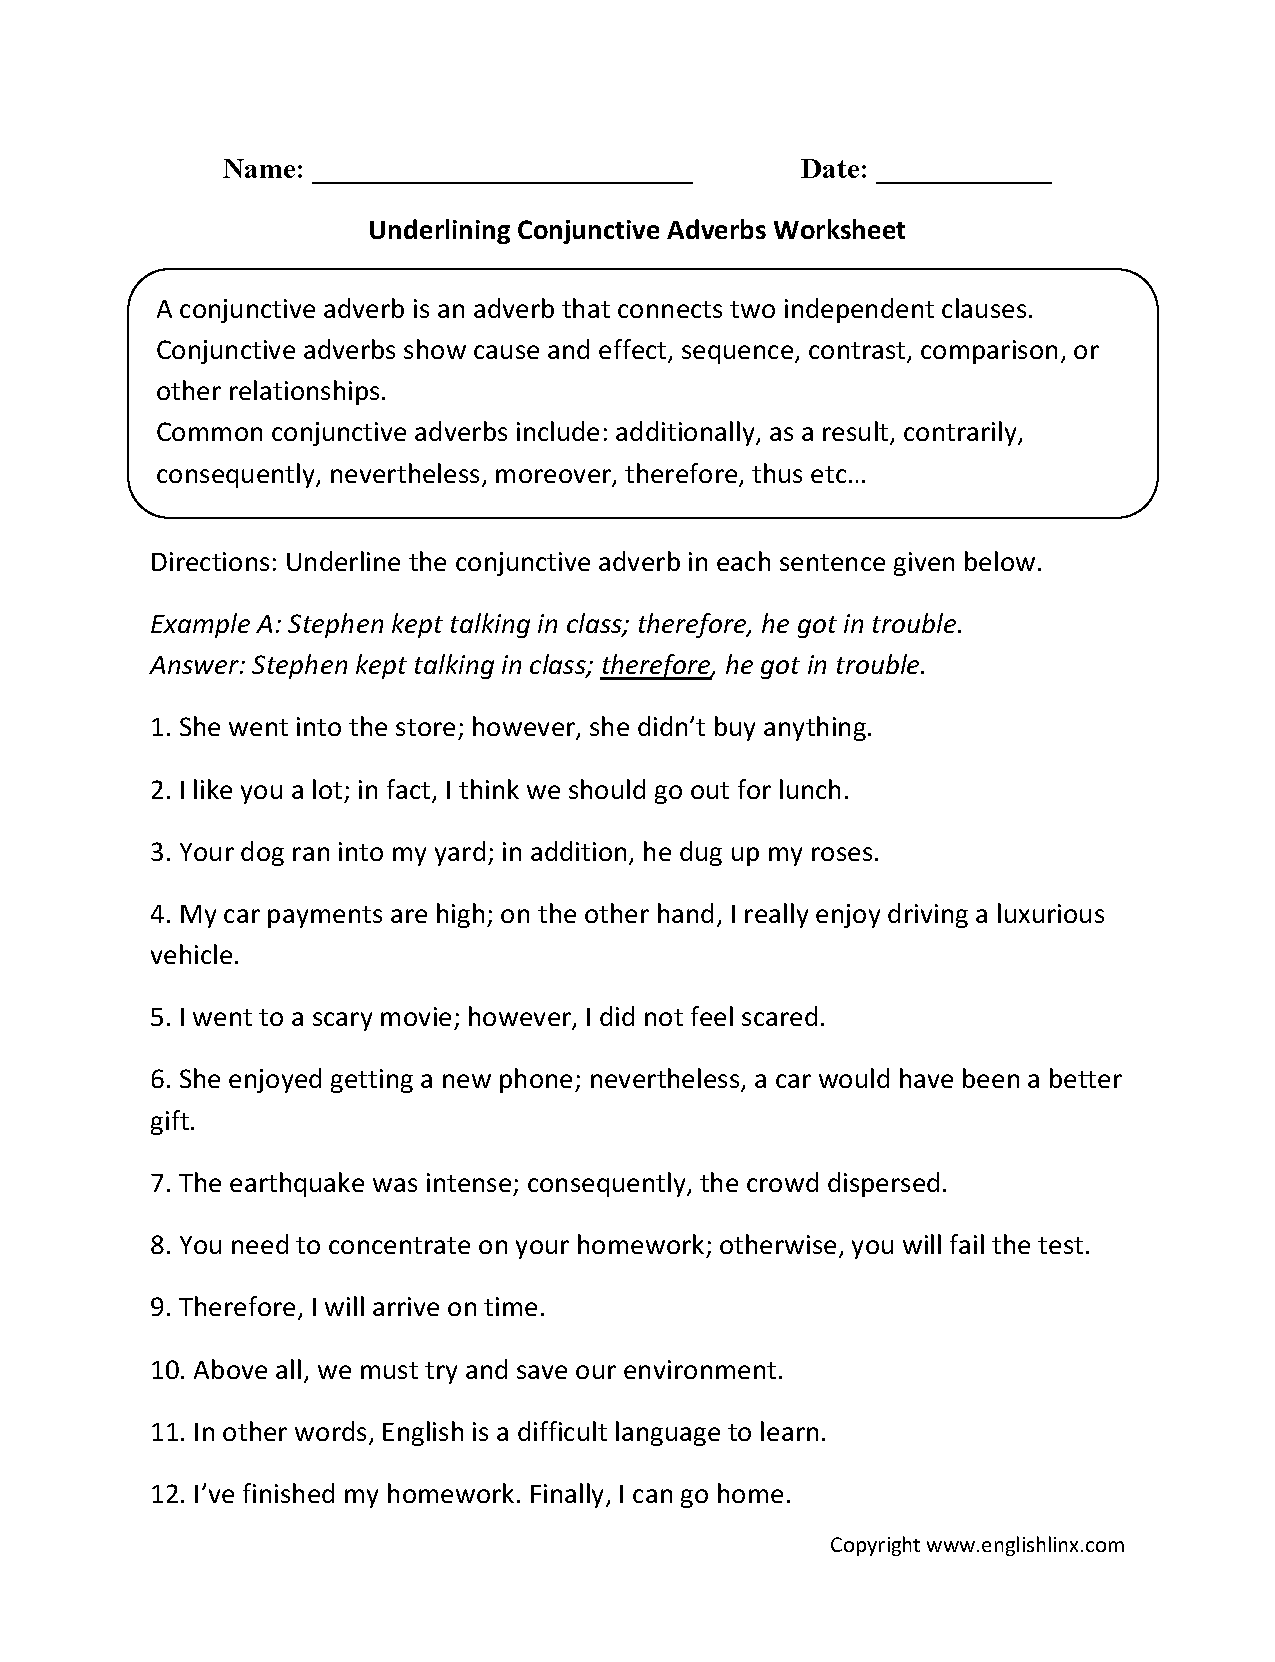 Proatmealus  Wonderful Englishlinxcom  Conjunctions Worksheets With Engaging Worksheet With Lovely Free Printable Addition And Subtraction Worksheets For First Grade Also Addition Worksheet Free In Addition Square Number Worksheet And Logic Worksheets For Middle School As Well As Vedic Maths Worksheets Additionally Haunted House Worksheets From Englishlinxcom With Proatmealus  Engaging Englishlinxcom  Conjunctions Worksheets With Lovely Worksheet And Wonderful Free Printable Addition And Subtraction Worksheets For First Grade Also Addition Worksheet Free In Addition Square Number Worksheet From Englishlinxcom